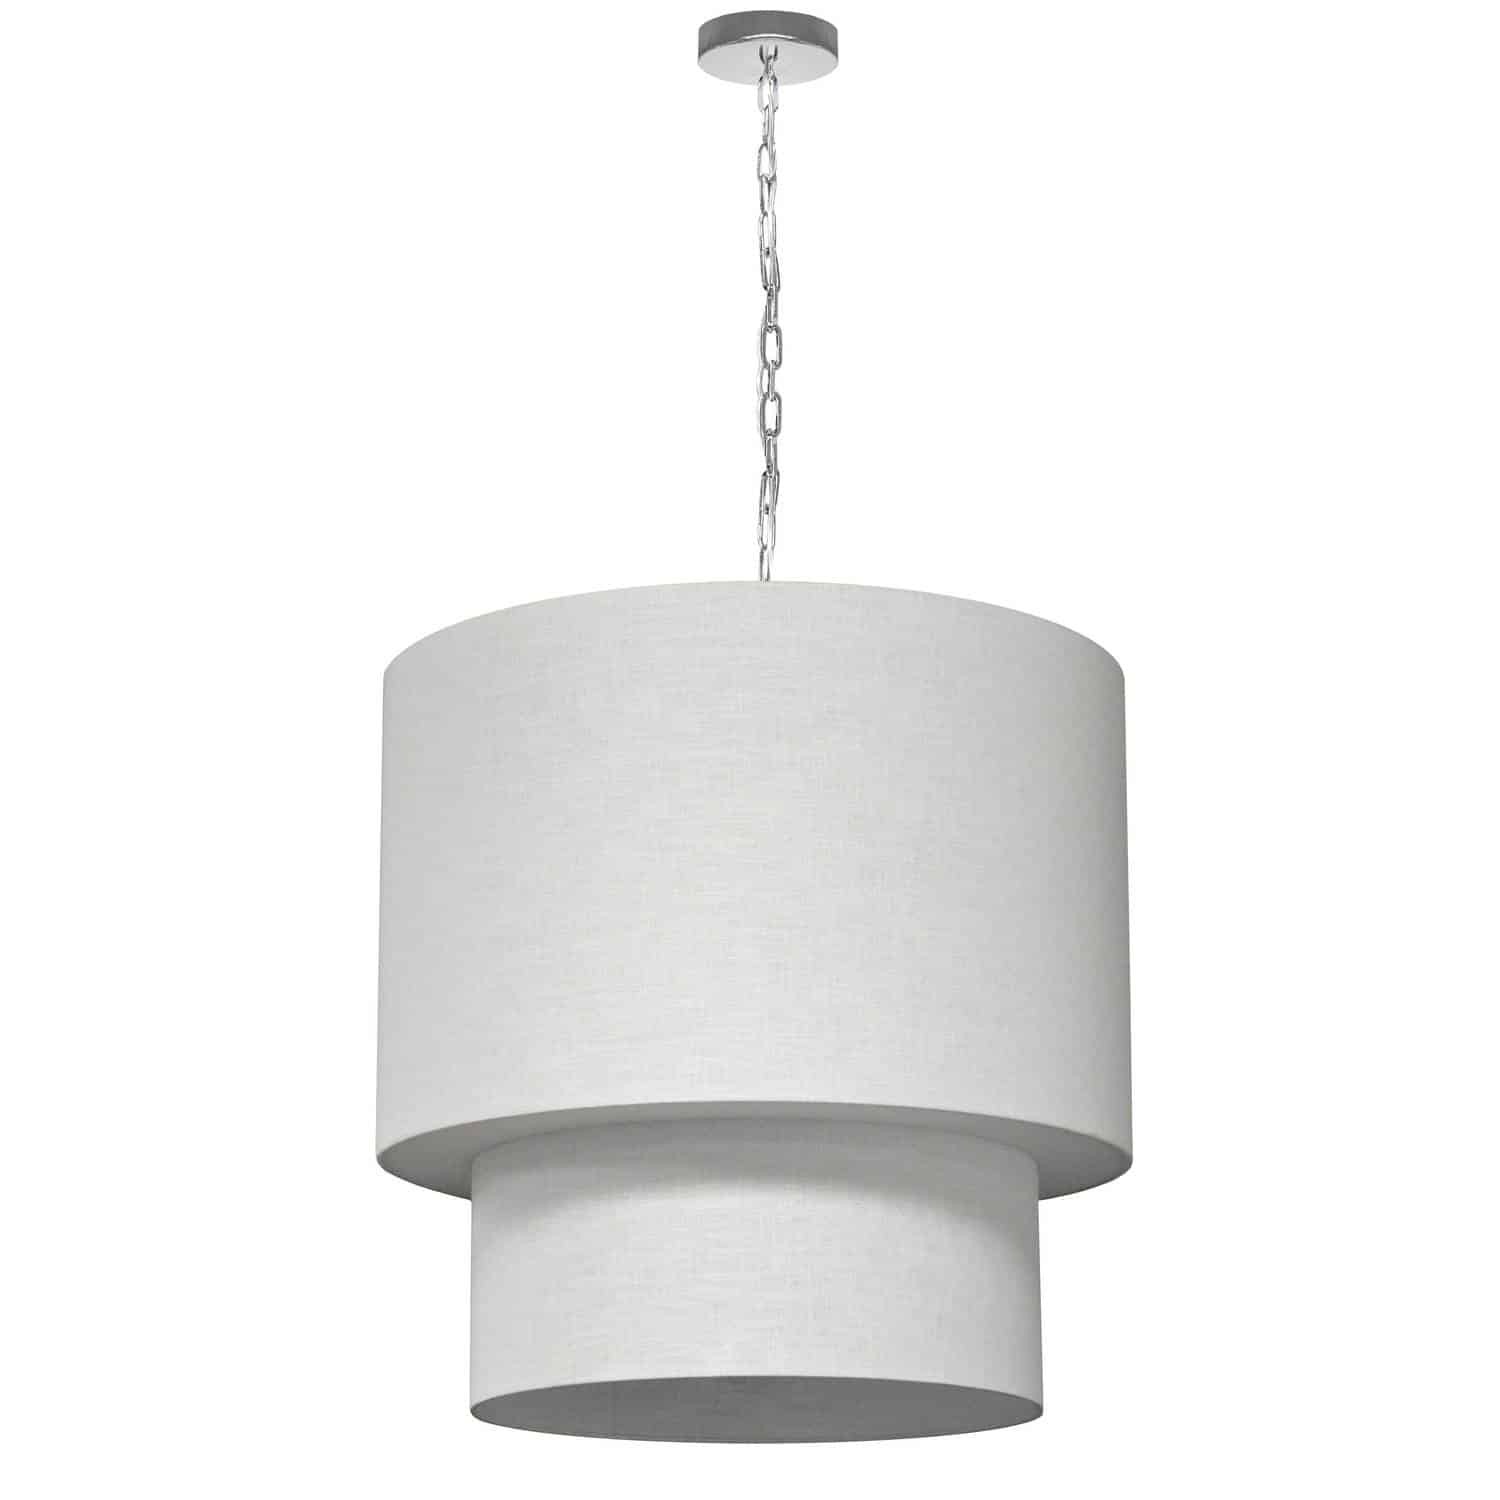 5 Light 2 Tiers Drum Linen Milano White, Acrylic Diffuser, Polished Chrome